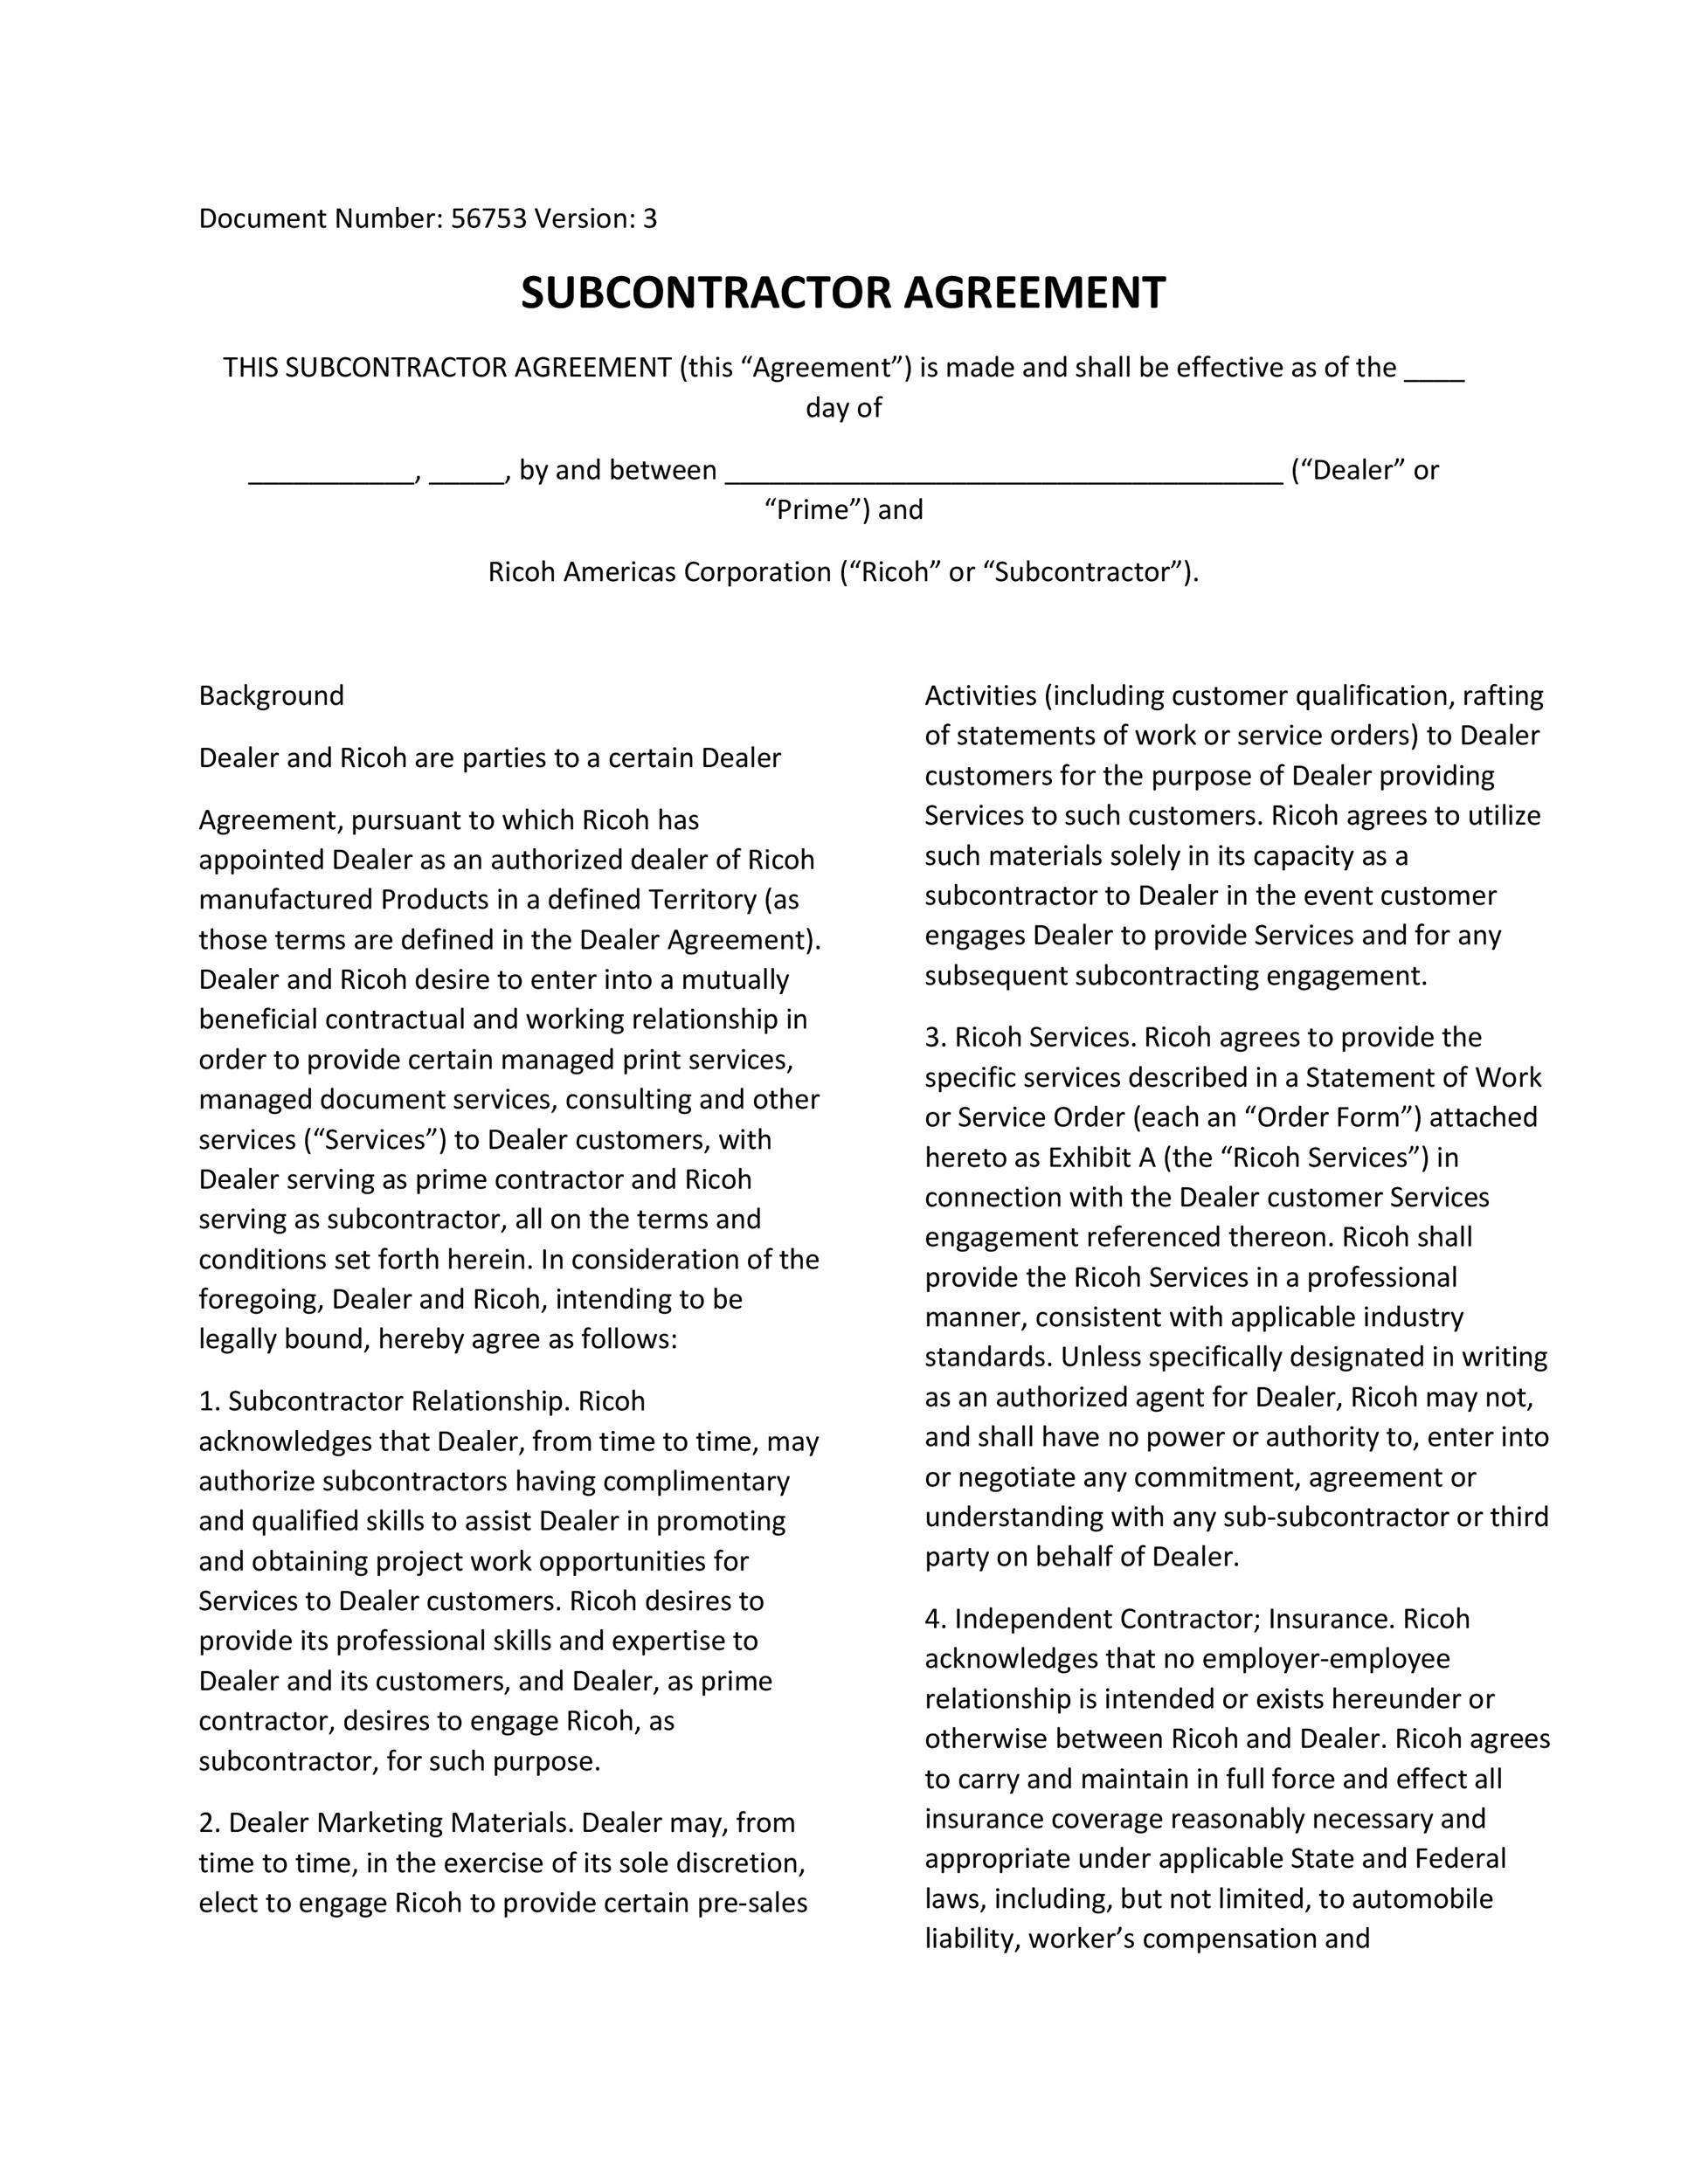 Need a Subcontractor Agreement? 39 Free Templates HERE - subcontractor agreement